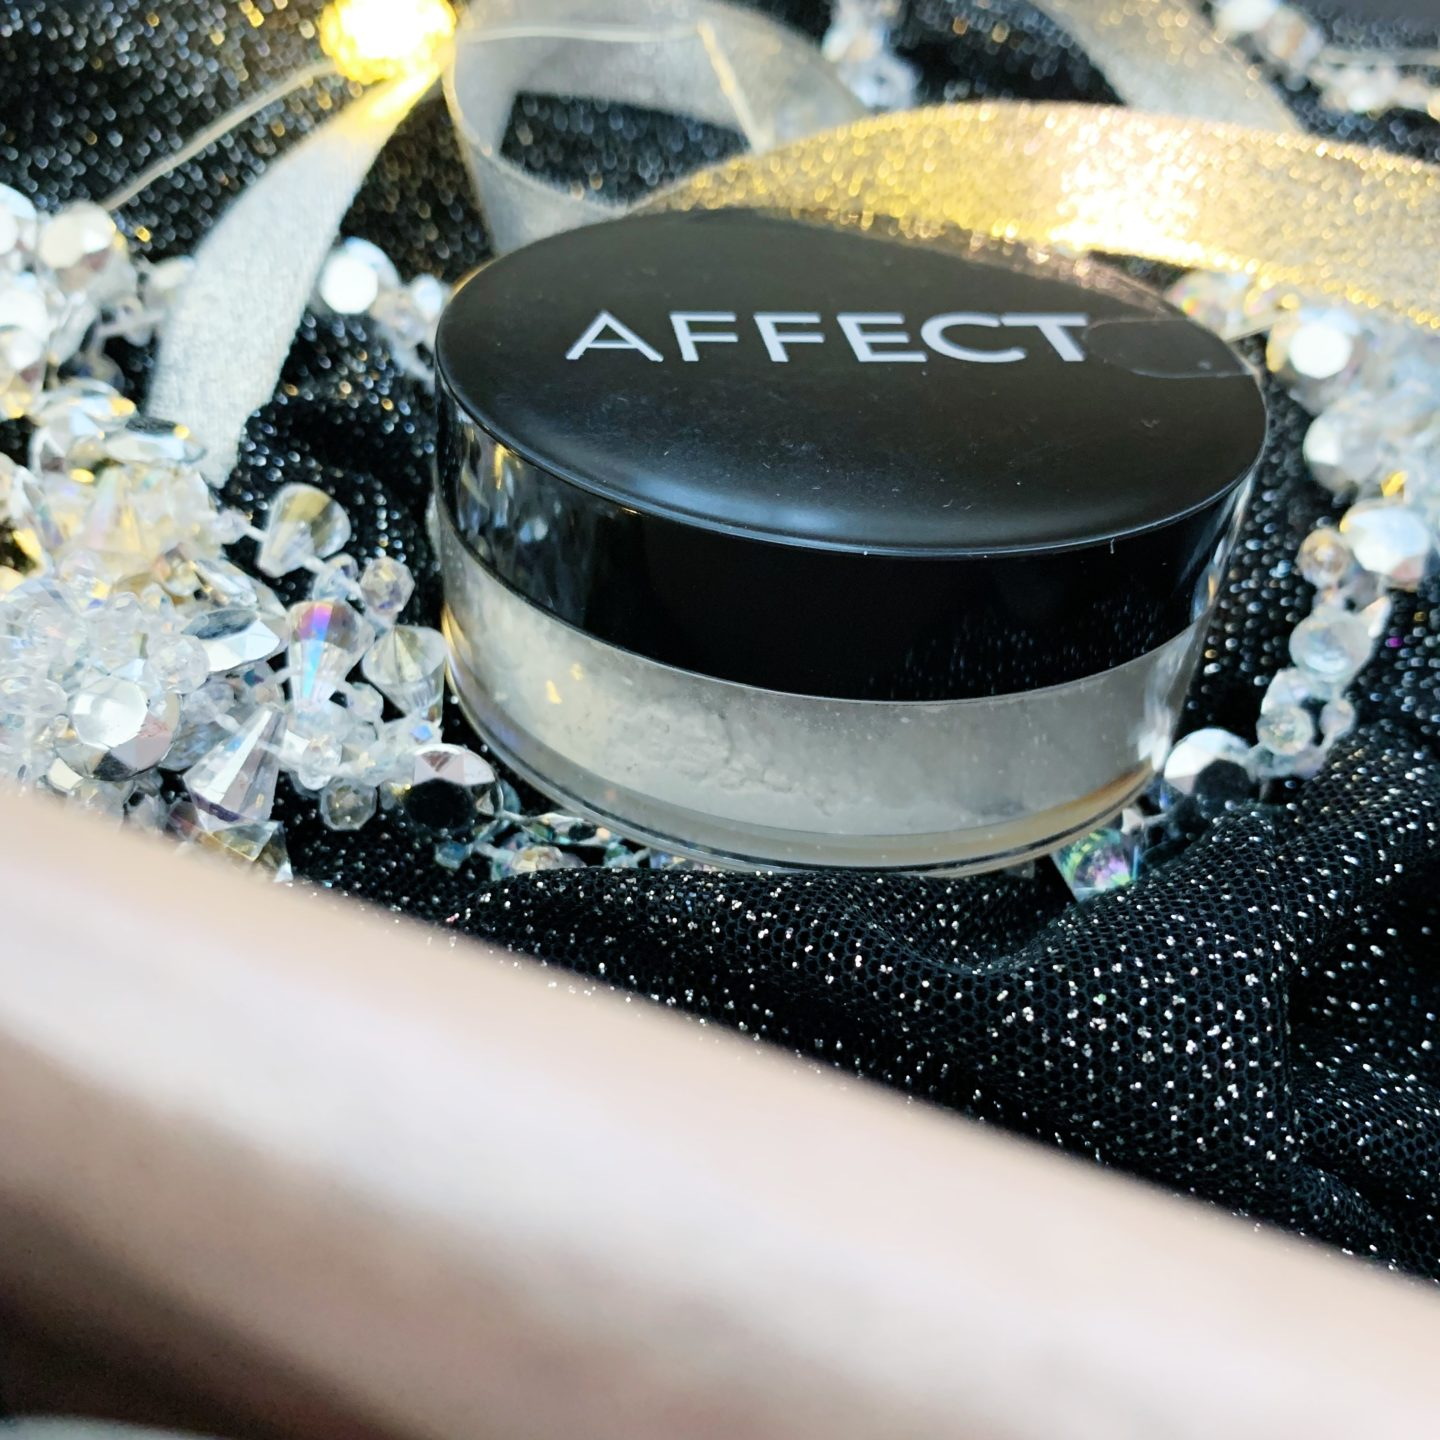 Affect Cosmetics Transparent Loose Rice Powder  - Limited Edition Black Friday Glossybox - Miss Boux